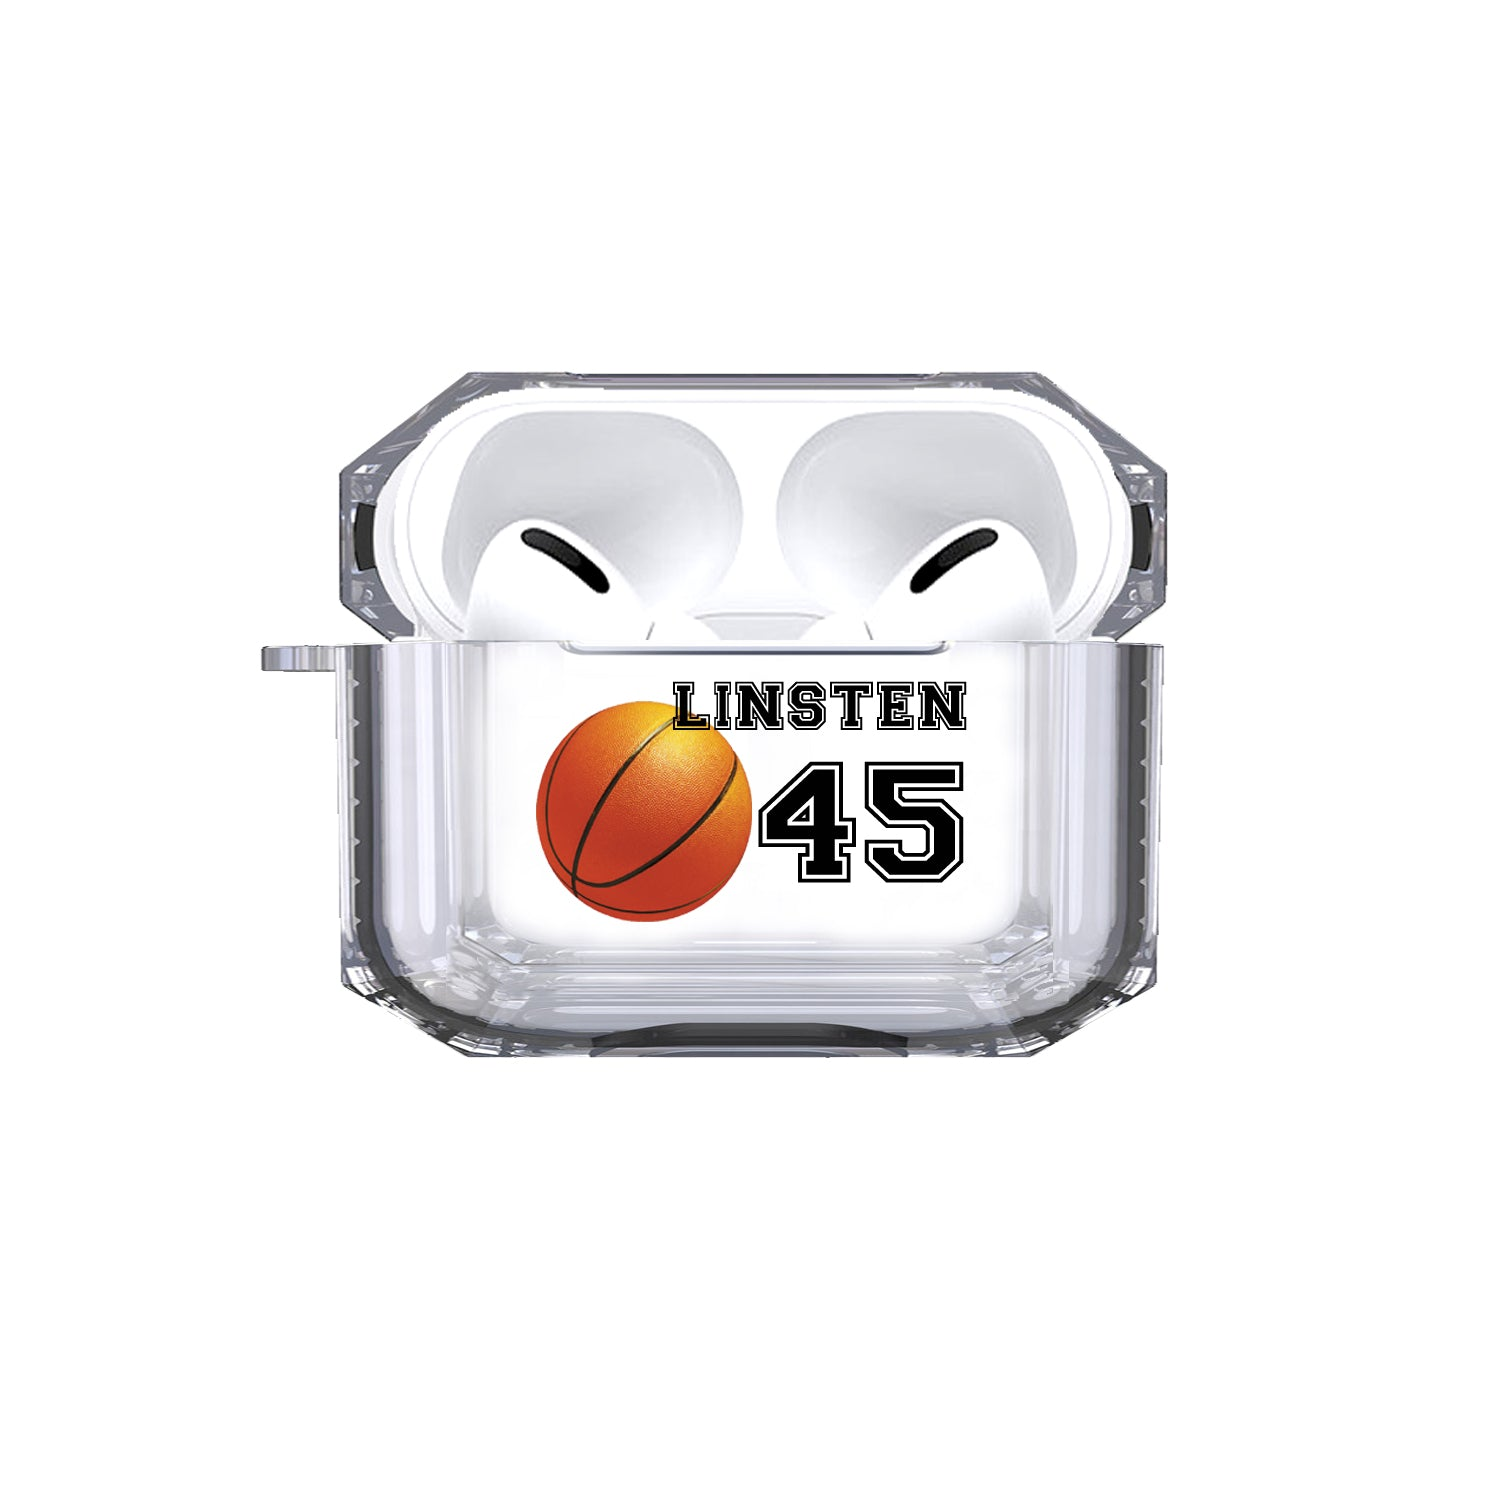 AirPods Pro - Personalized Basketball Tough Case